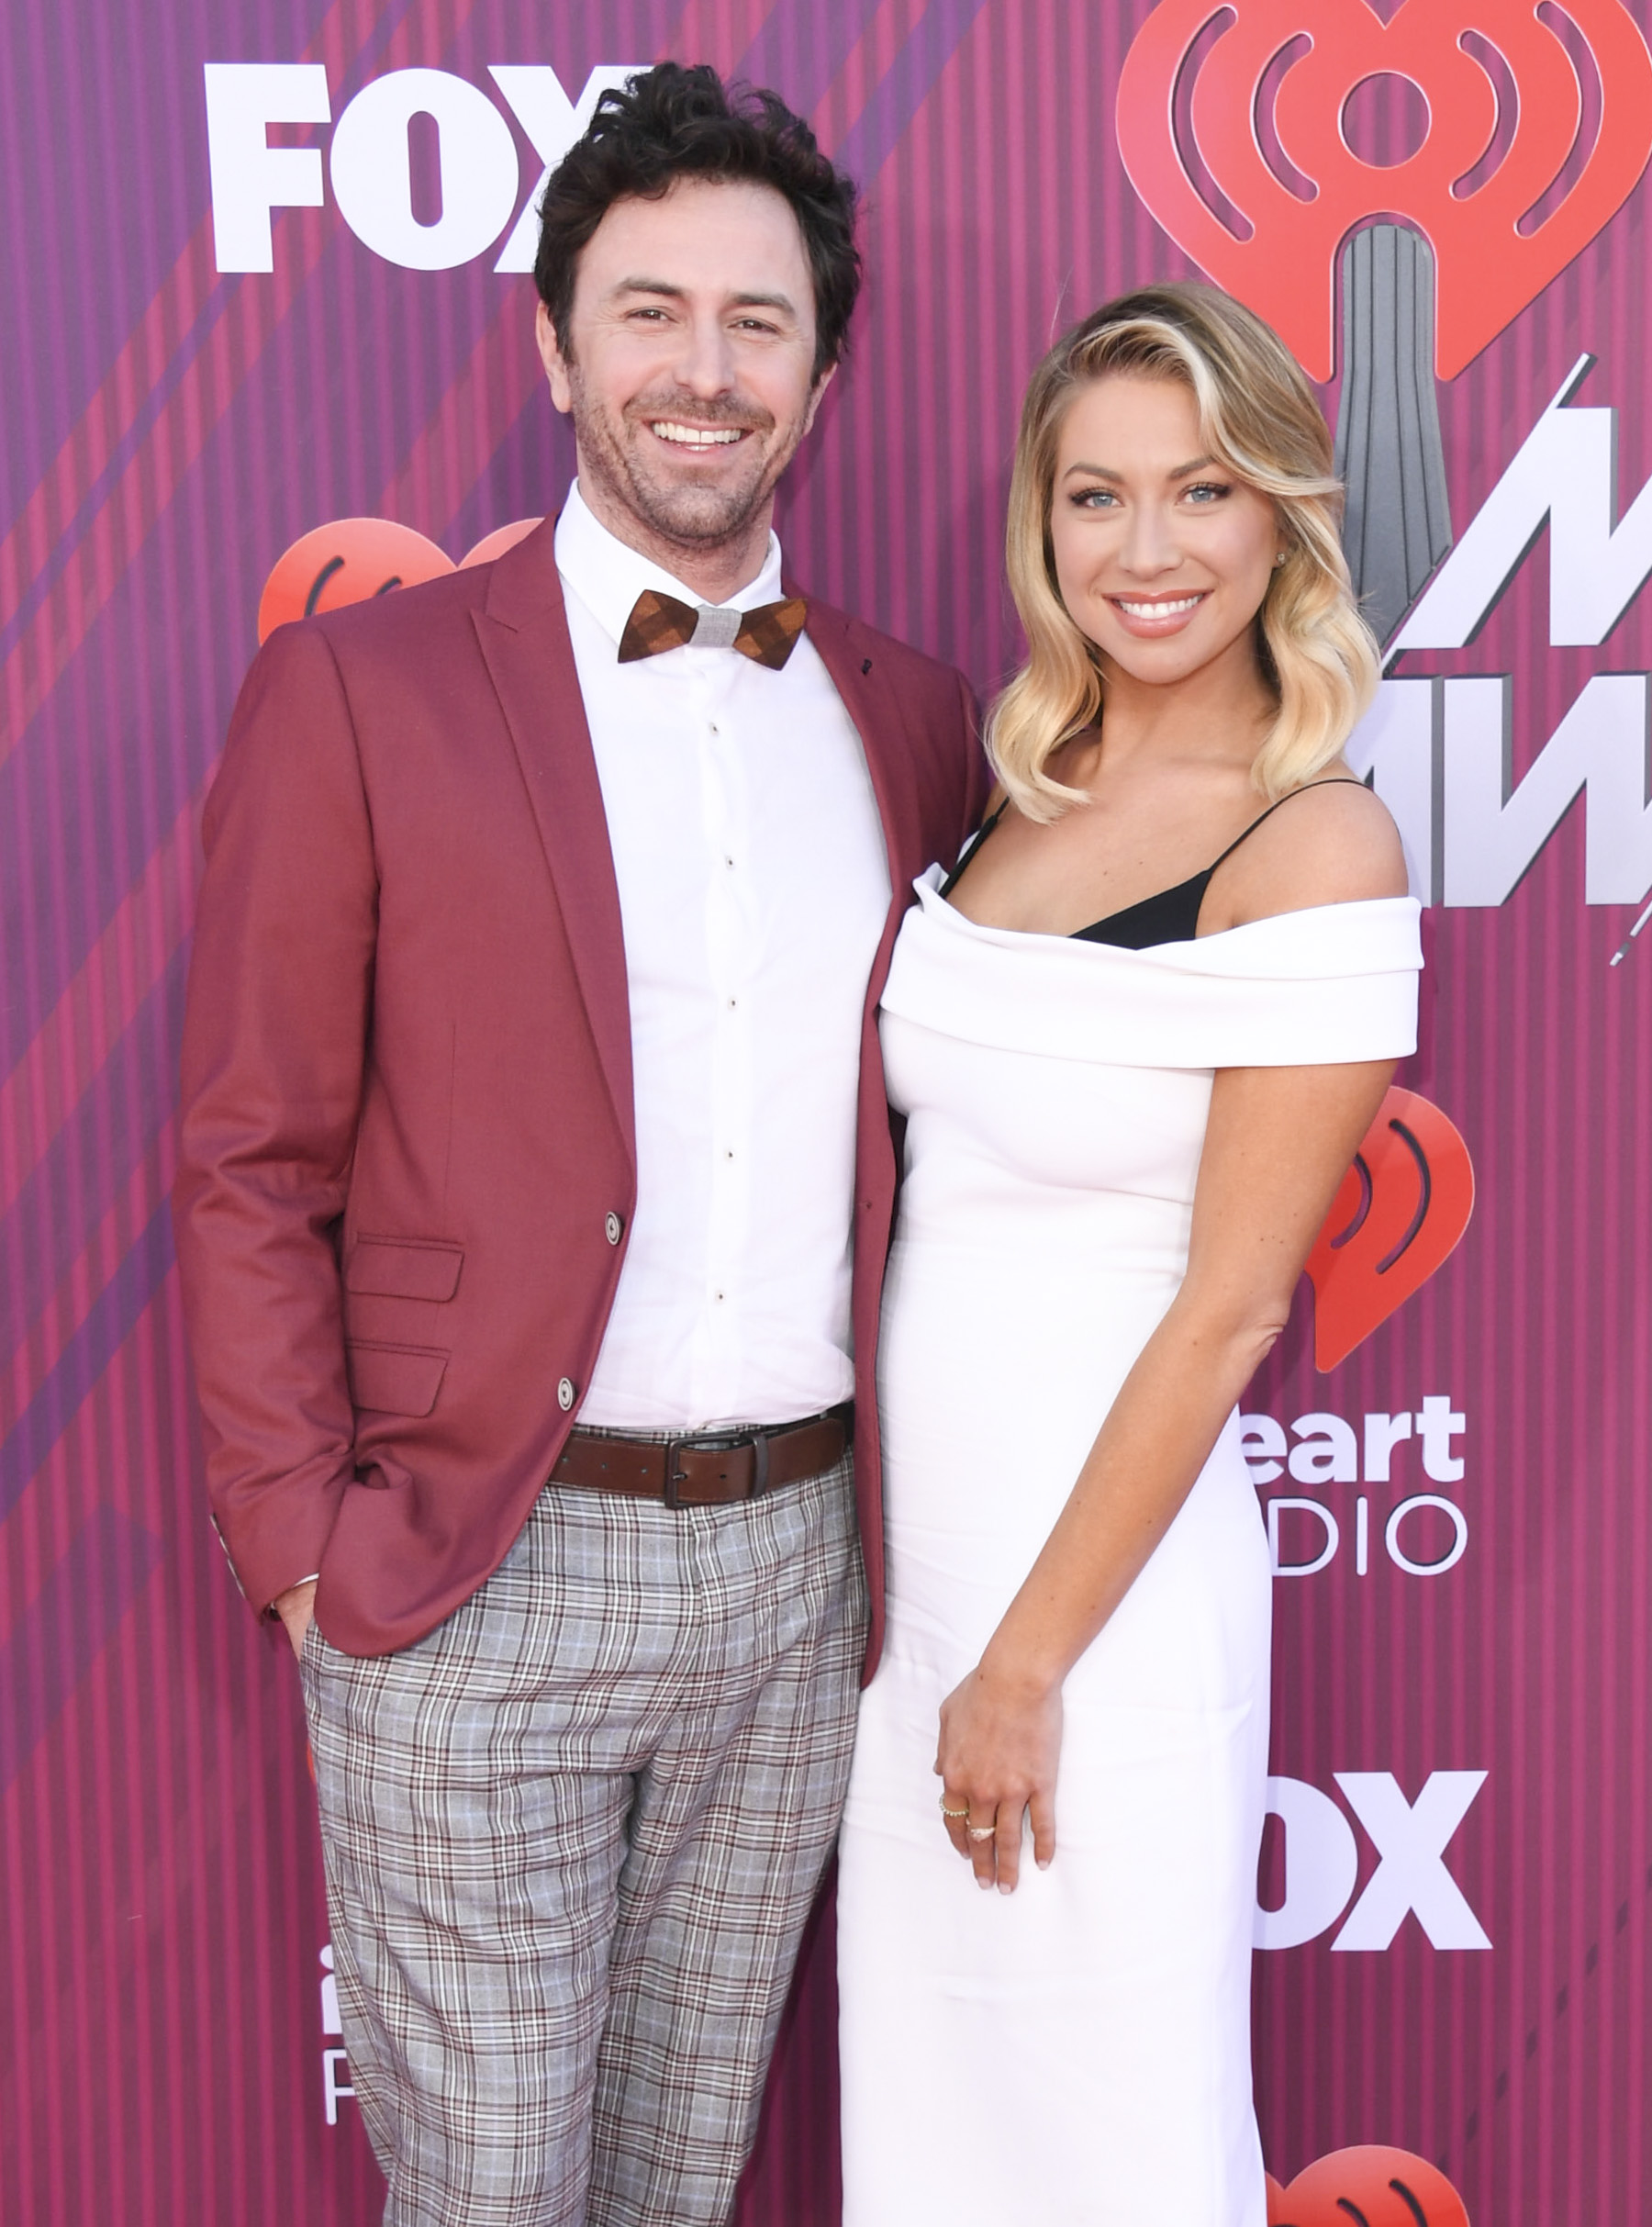 Stassi Schroeder and Beau Clark on red carpet